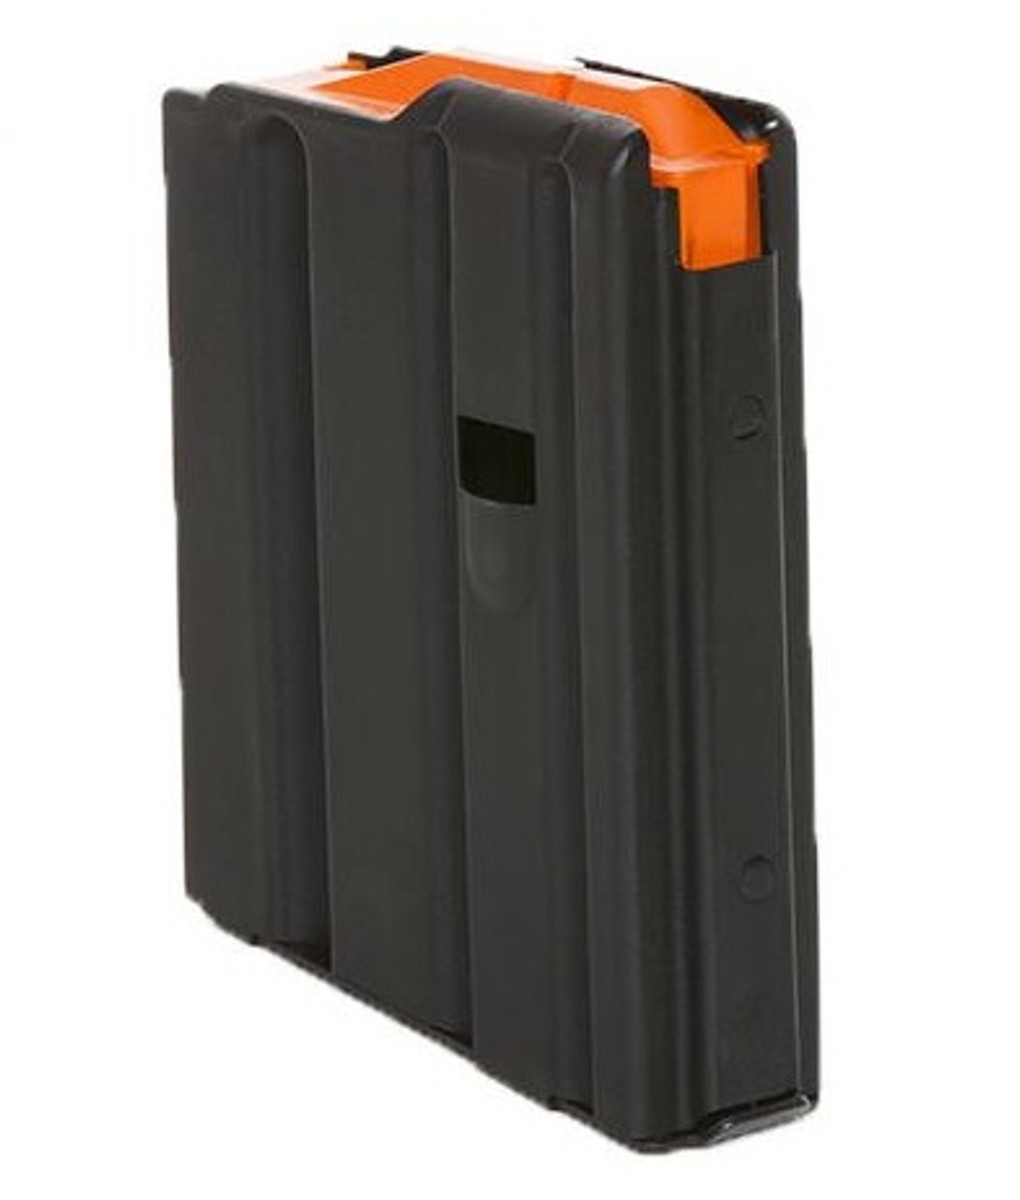 CPD 223_556 LAR pistol mag 10 rounds